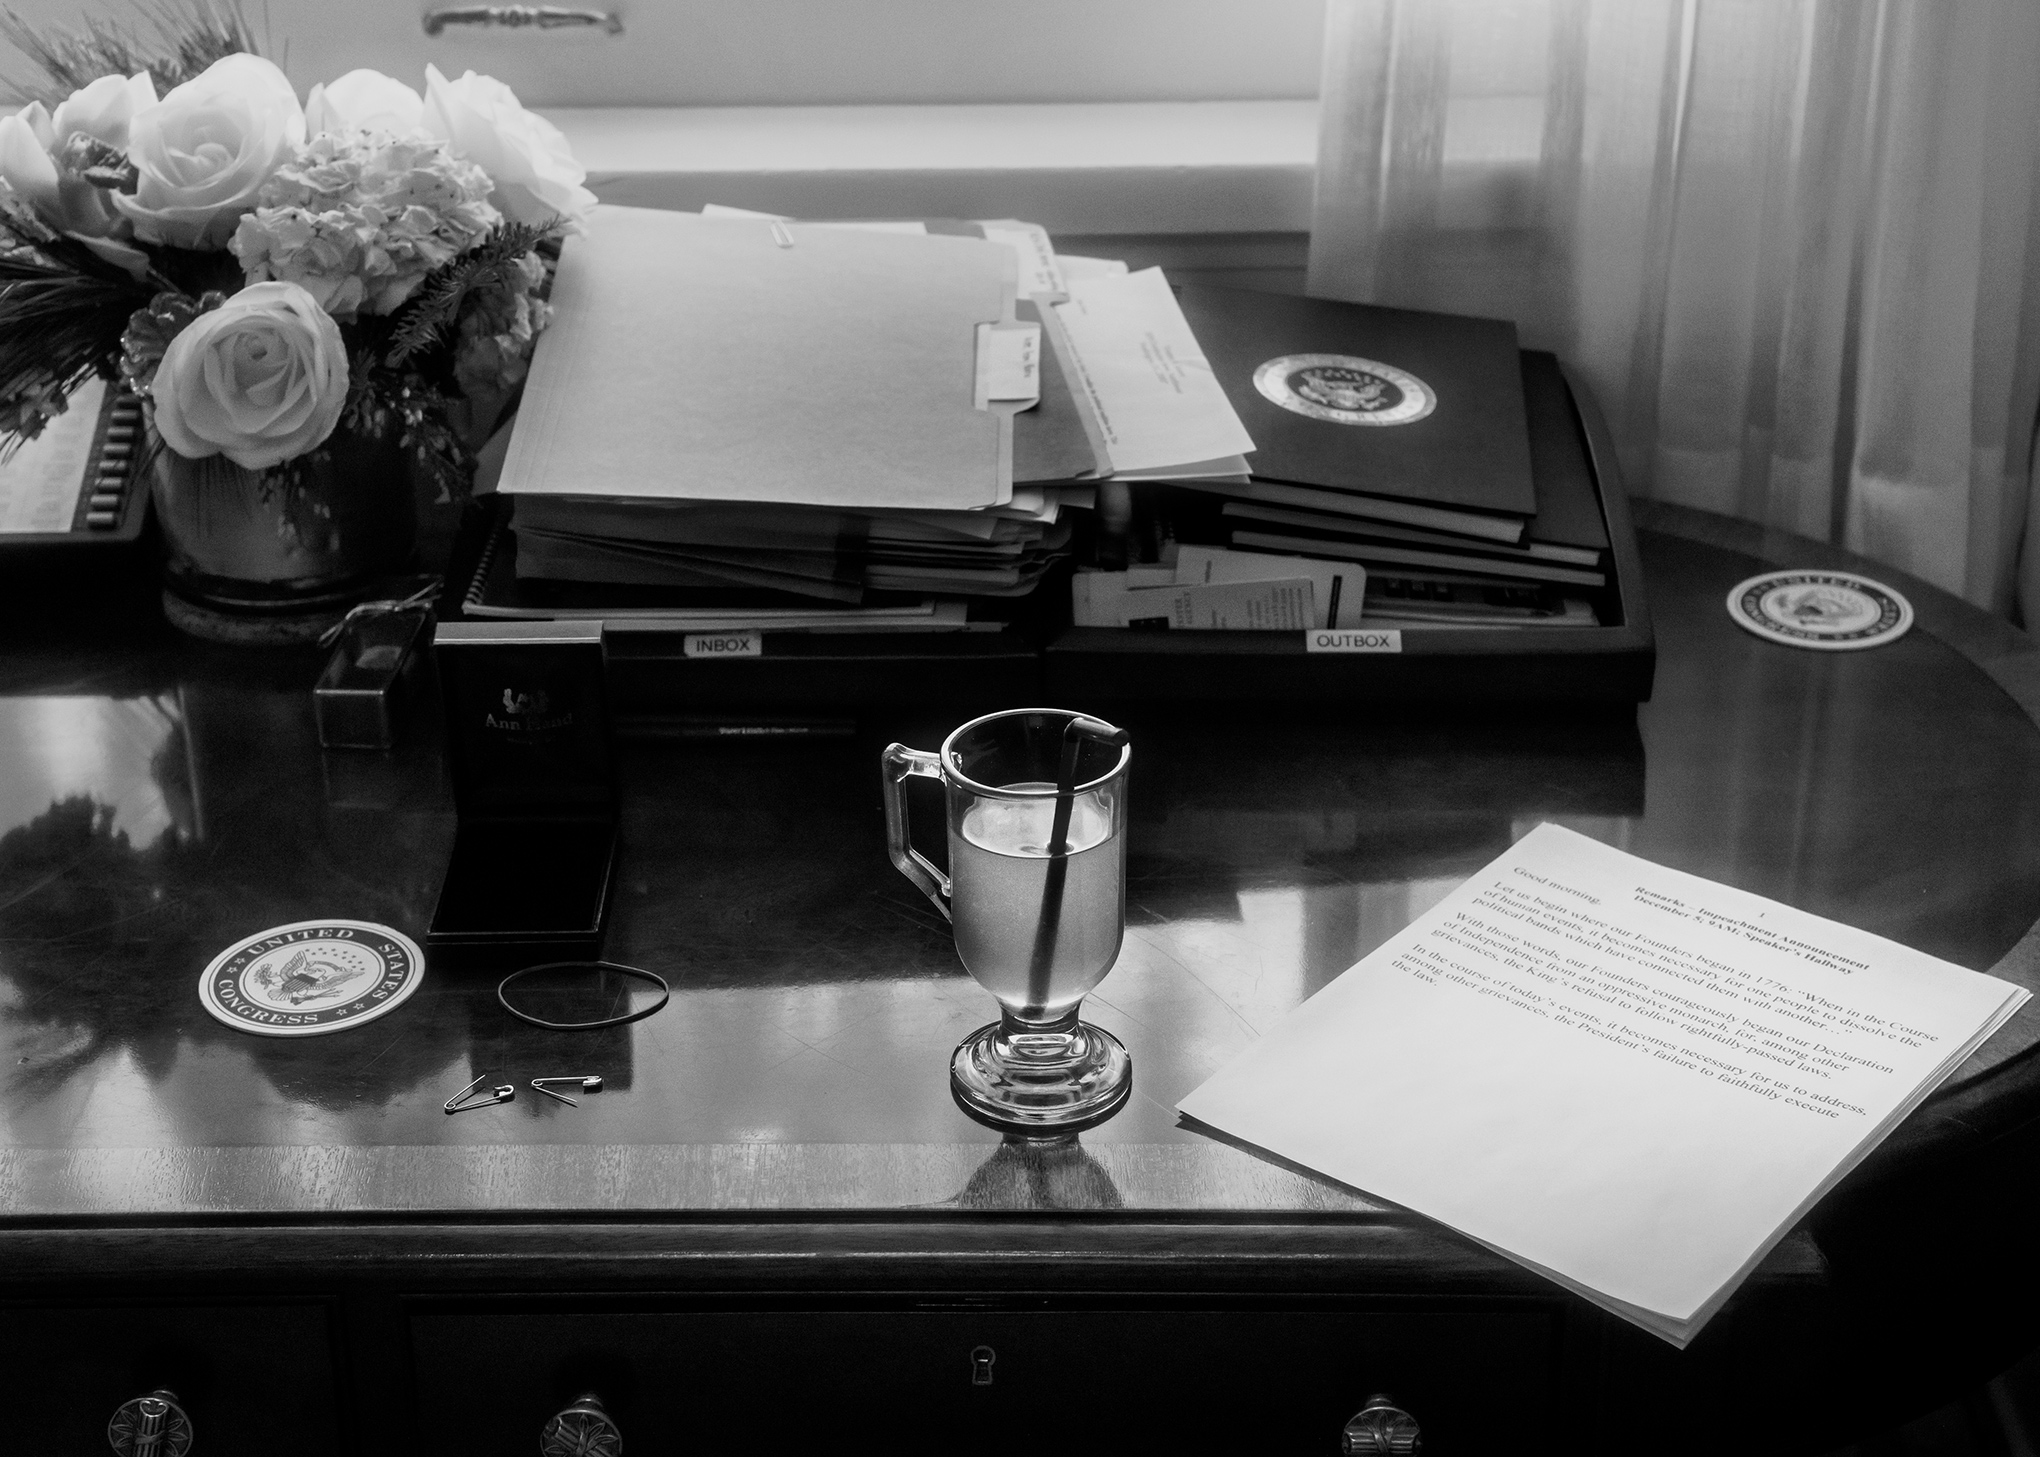 Pelosi's desk in her office at the Capitol on December 5.